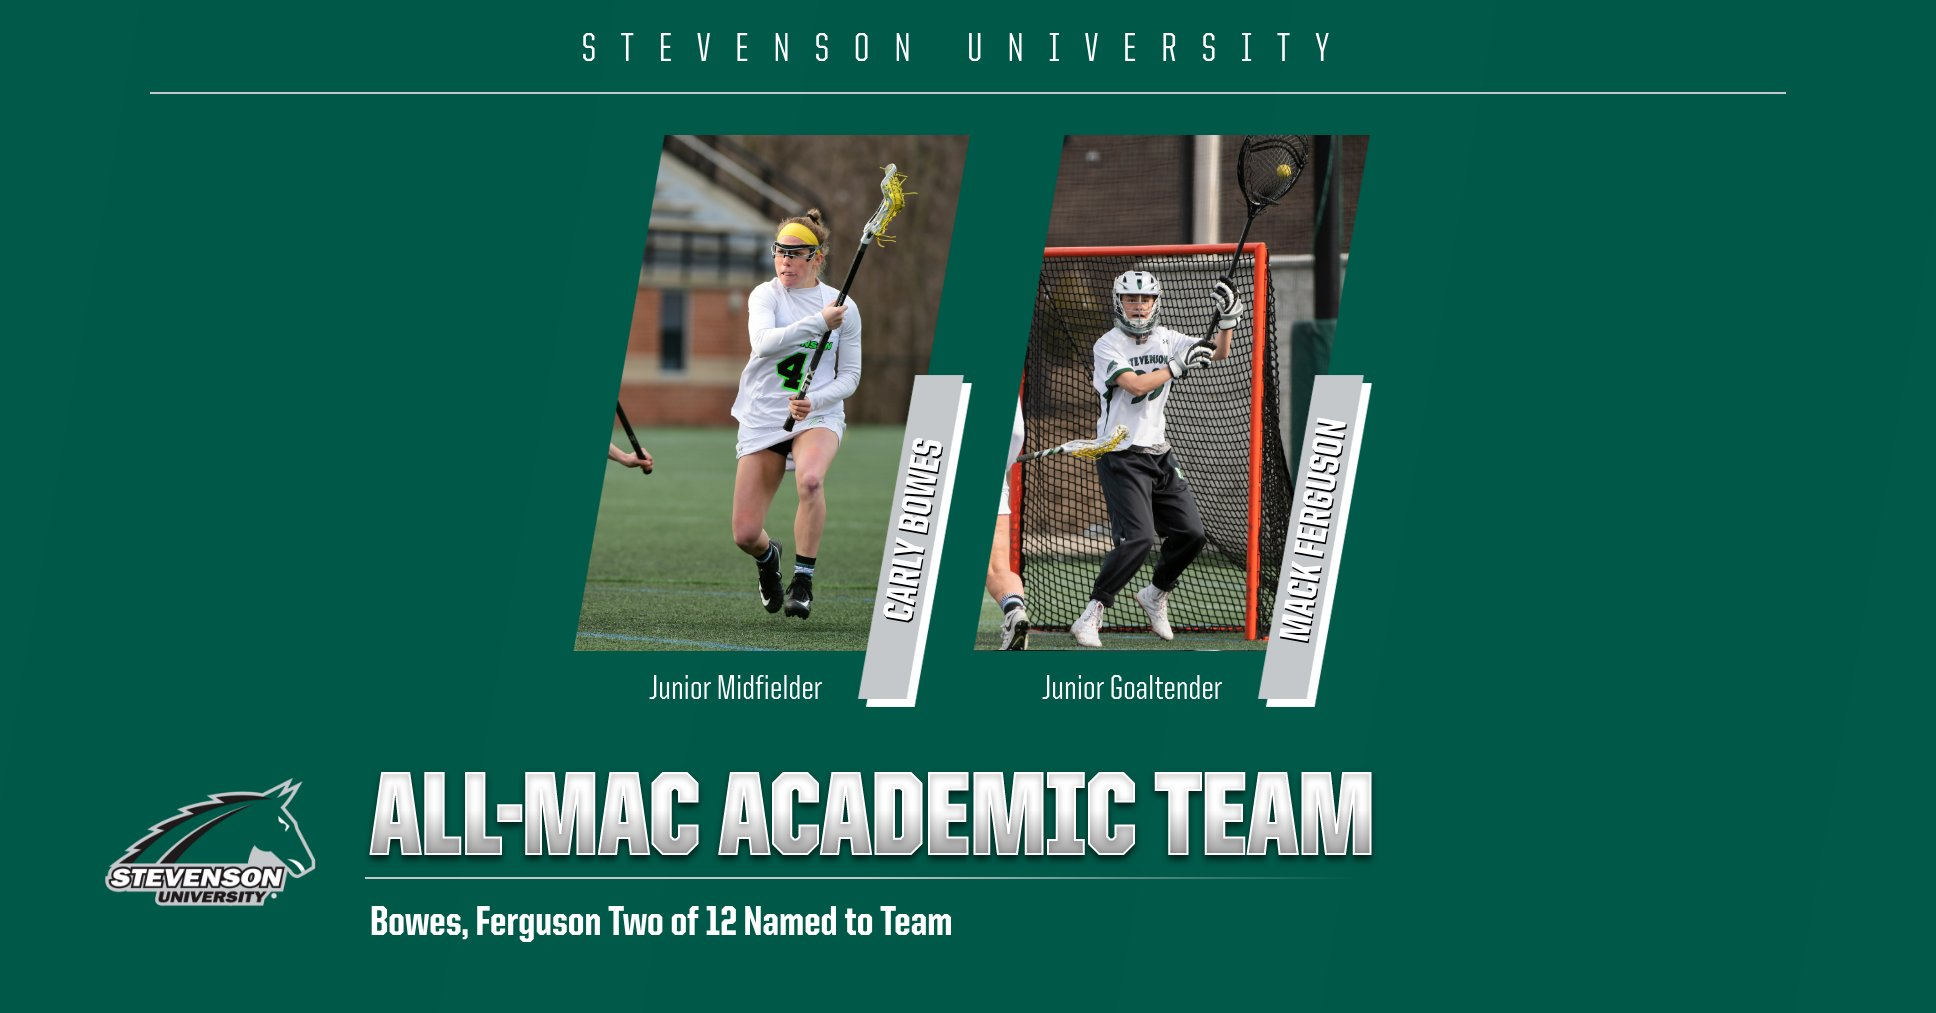 Bowes, Ferguson Named to Spring Academic All-MAC Team